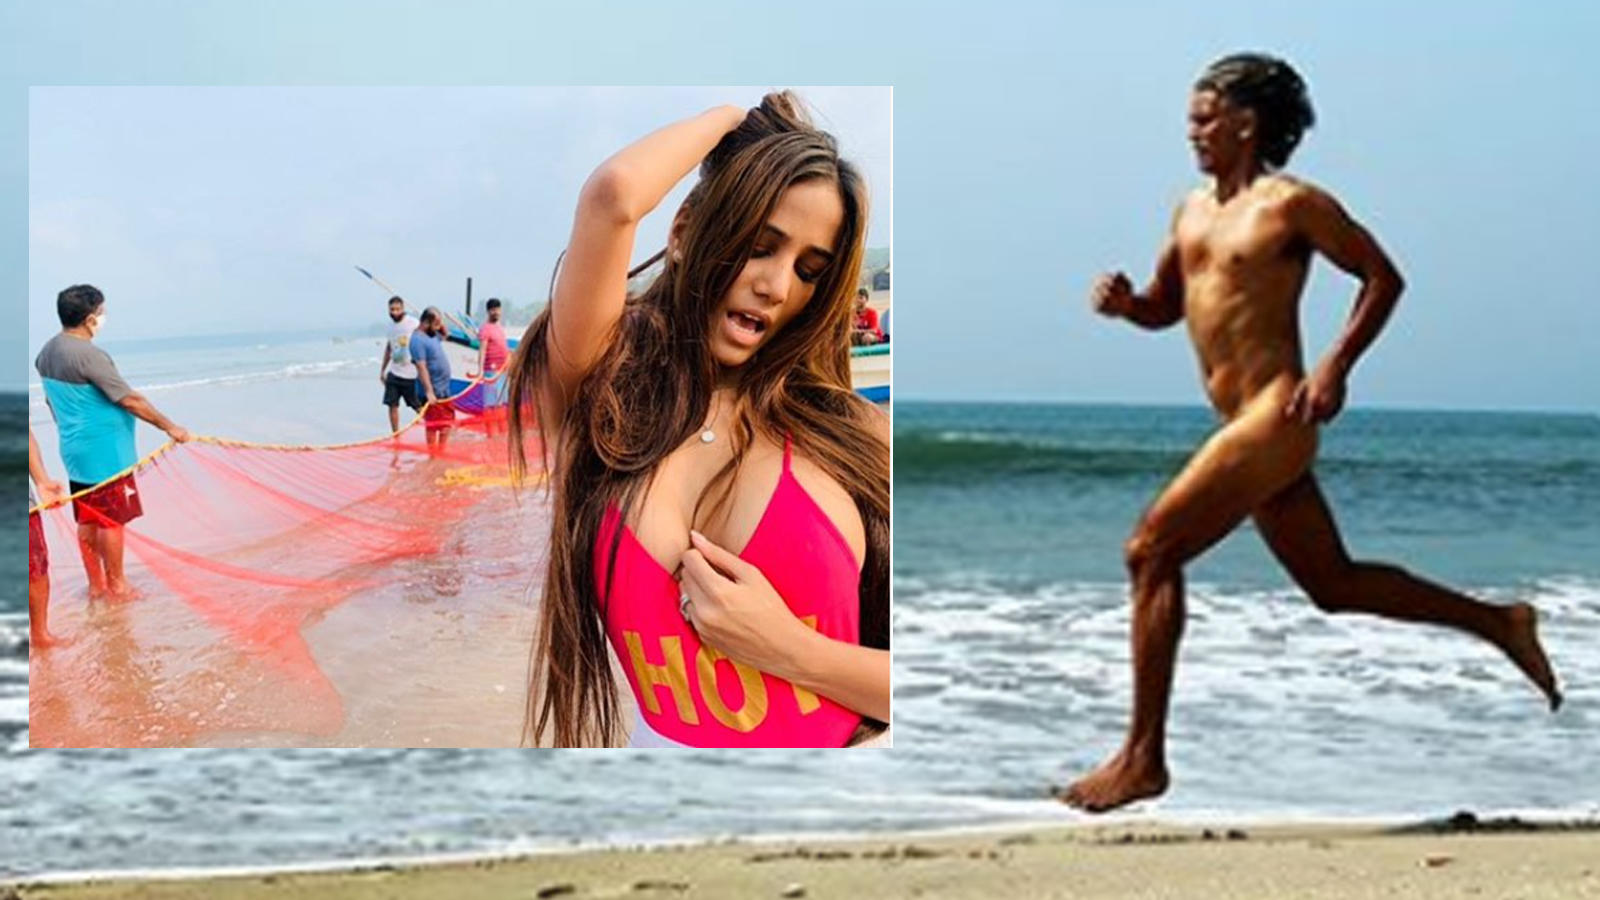 Girls nude beach selfie group Fir Against Milind Soman For Running Naked On A Goa Beach After Netizens Call Out Authorities For Their Hypocrisy Over Poonam Pandey S Arrest Hindi Movie News Bollywood Times Of India